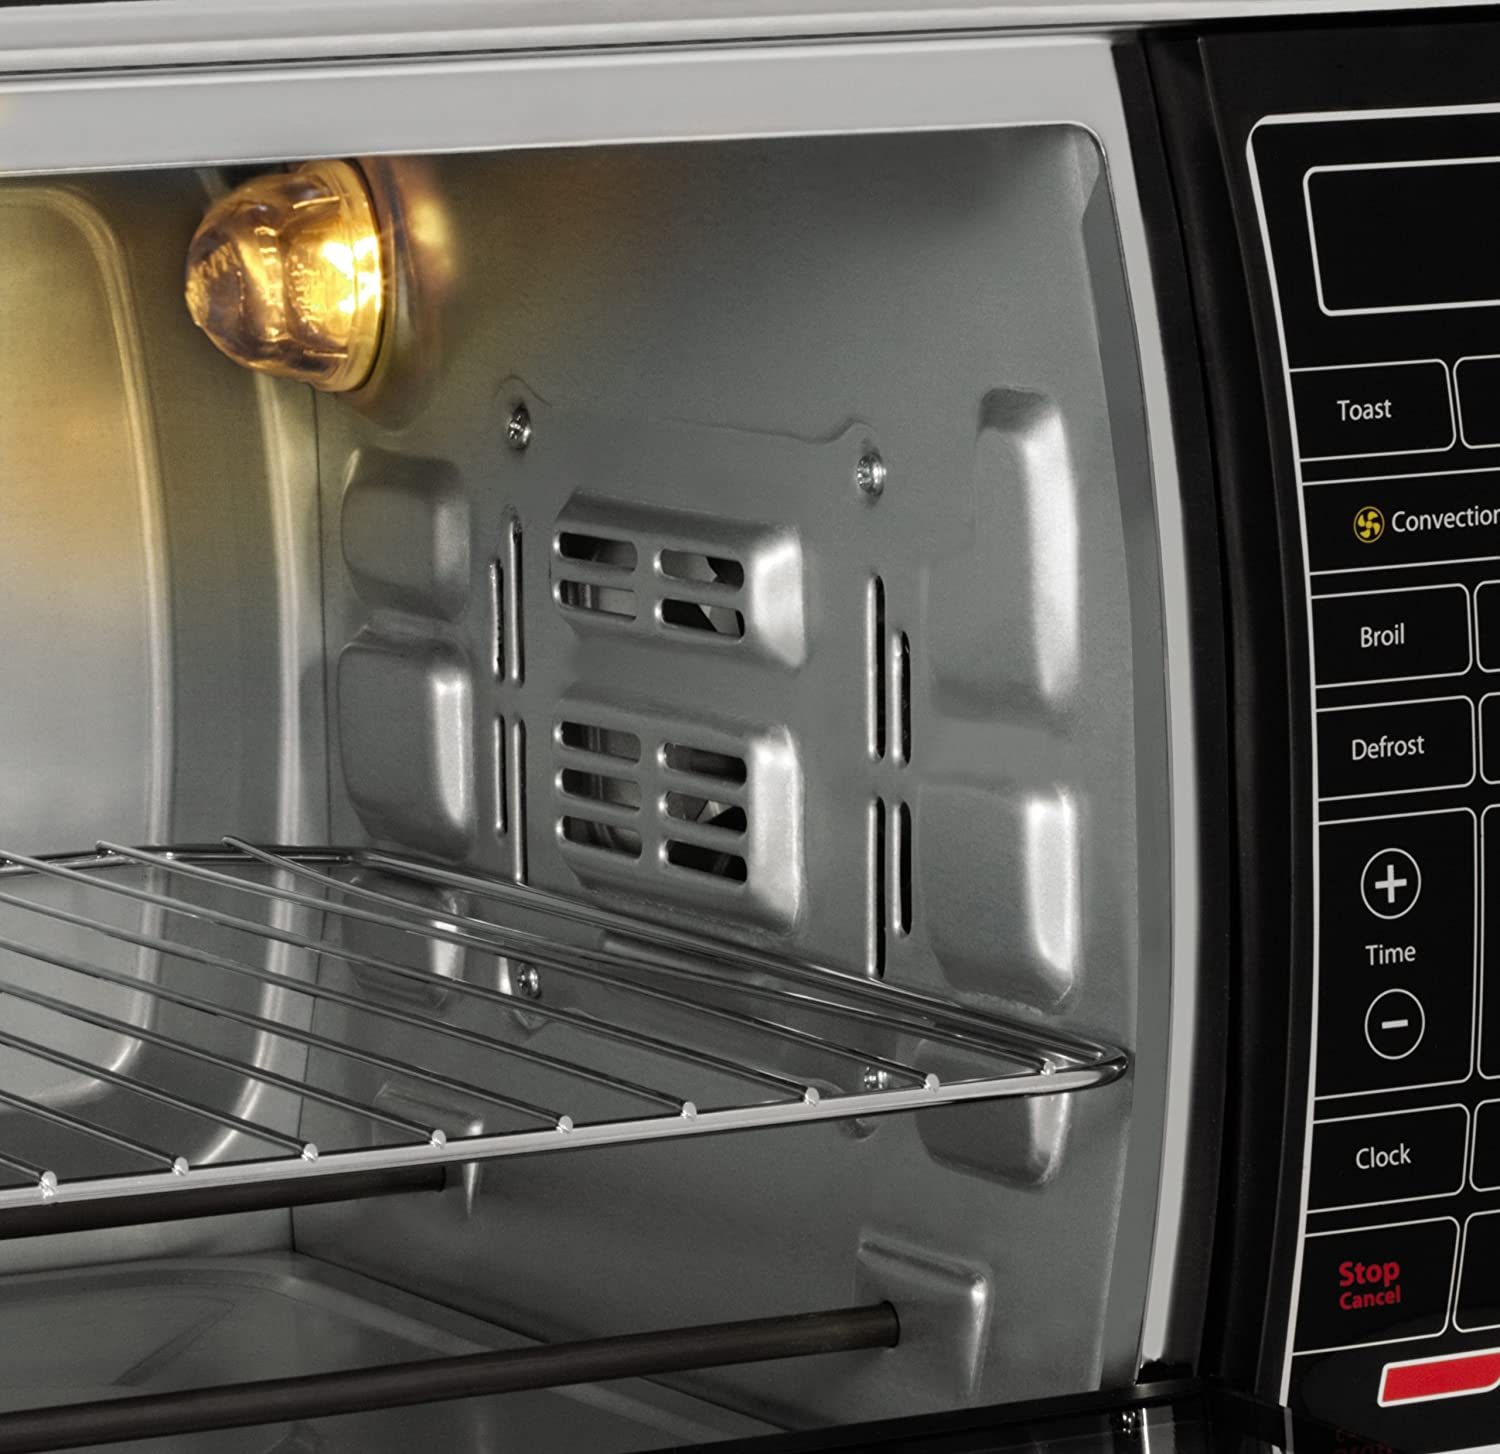 Largest Capacity Countertop Convection Oven : Toaster Oven Digital Microwave Cook Electric Control Large Interior ...